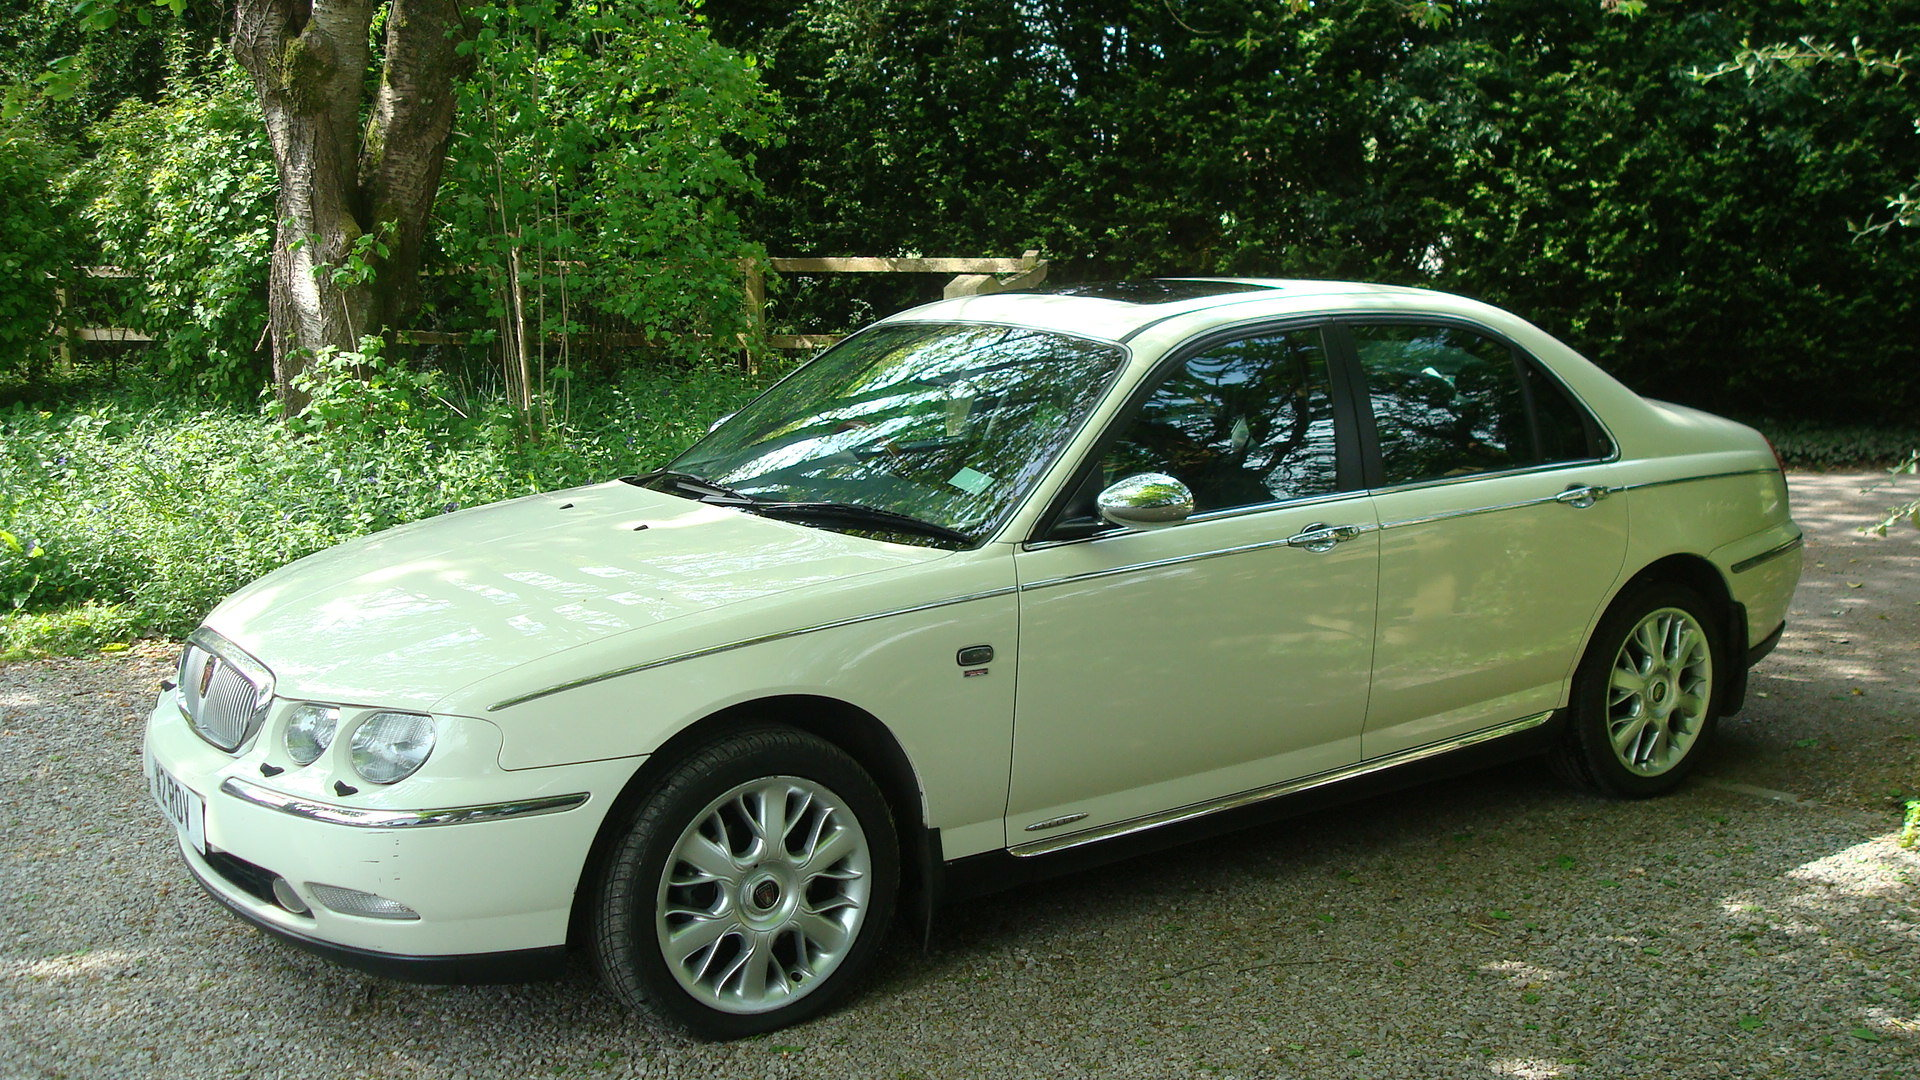 2000 Rover 75 2.5 V6 Connoisseur ( Manual) SOLD (picture 2 of 6)